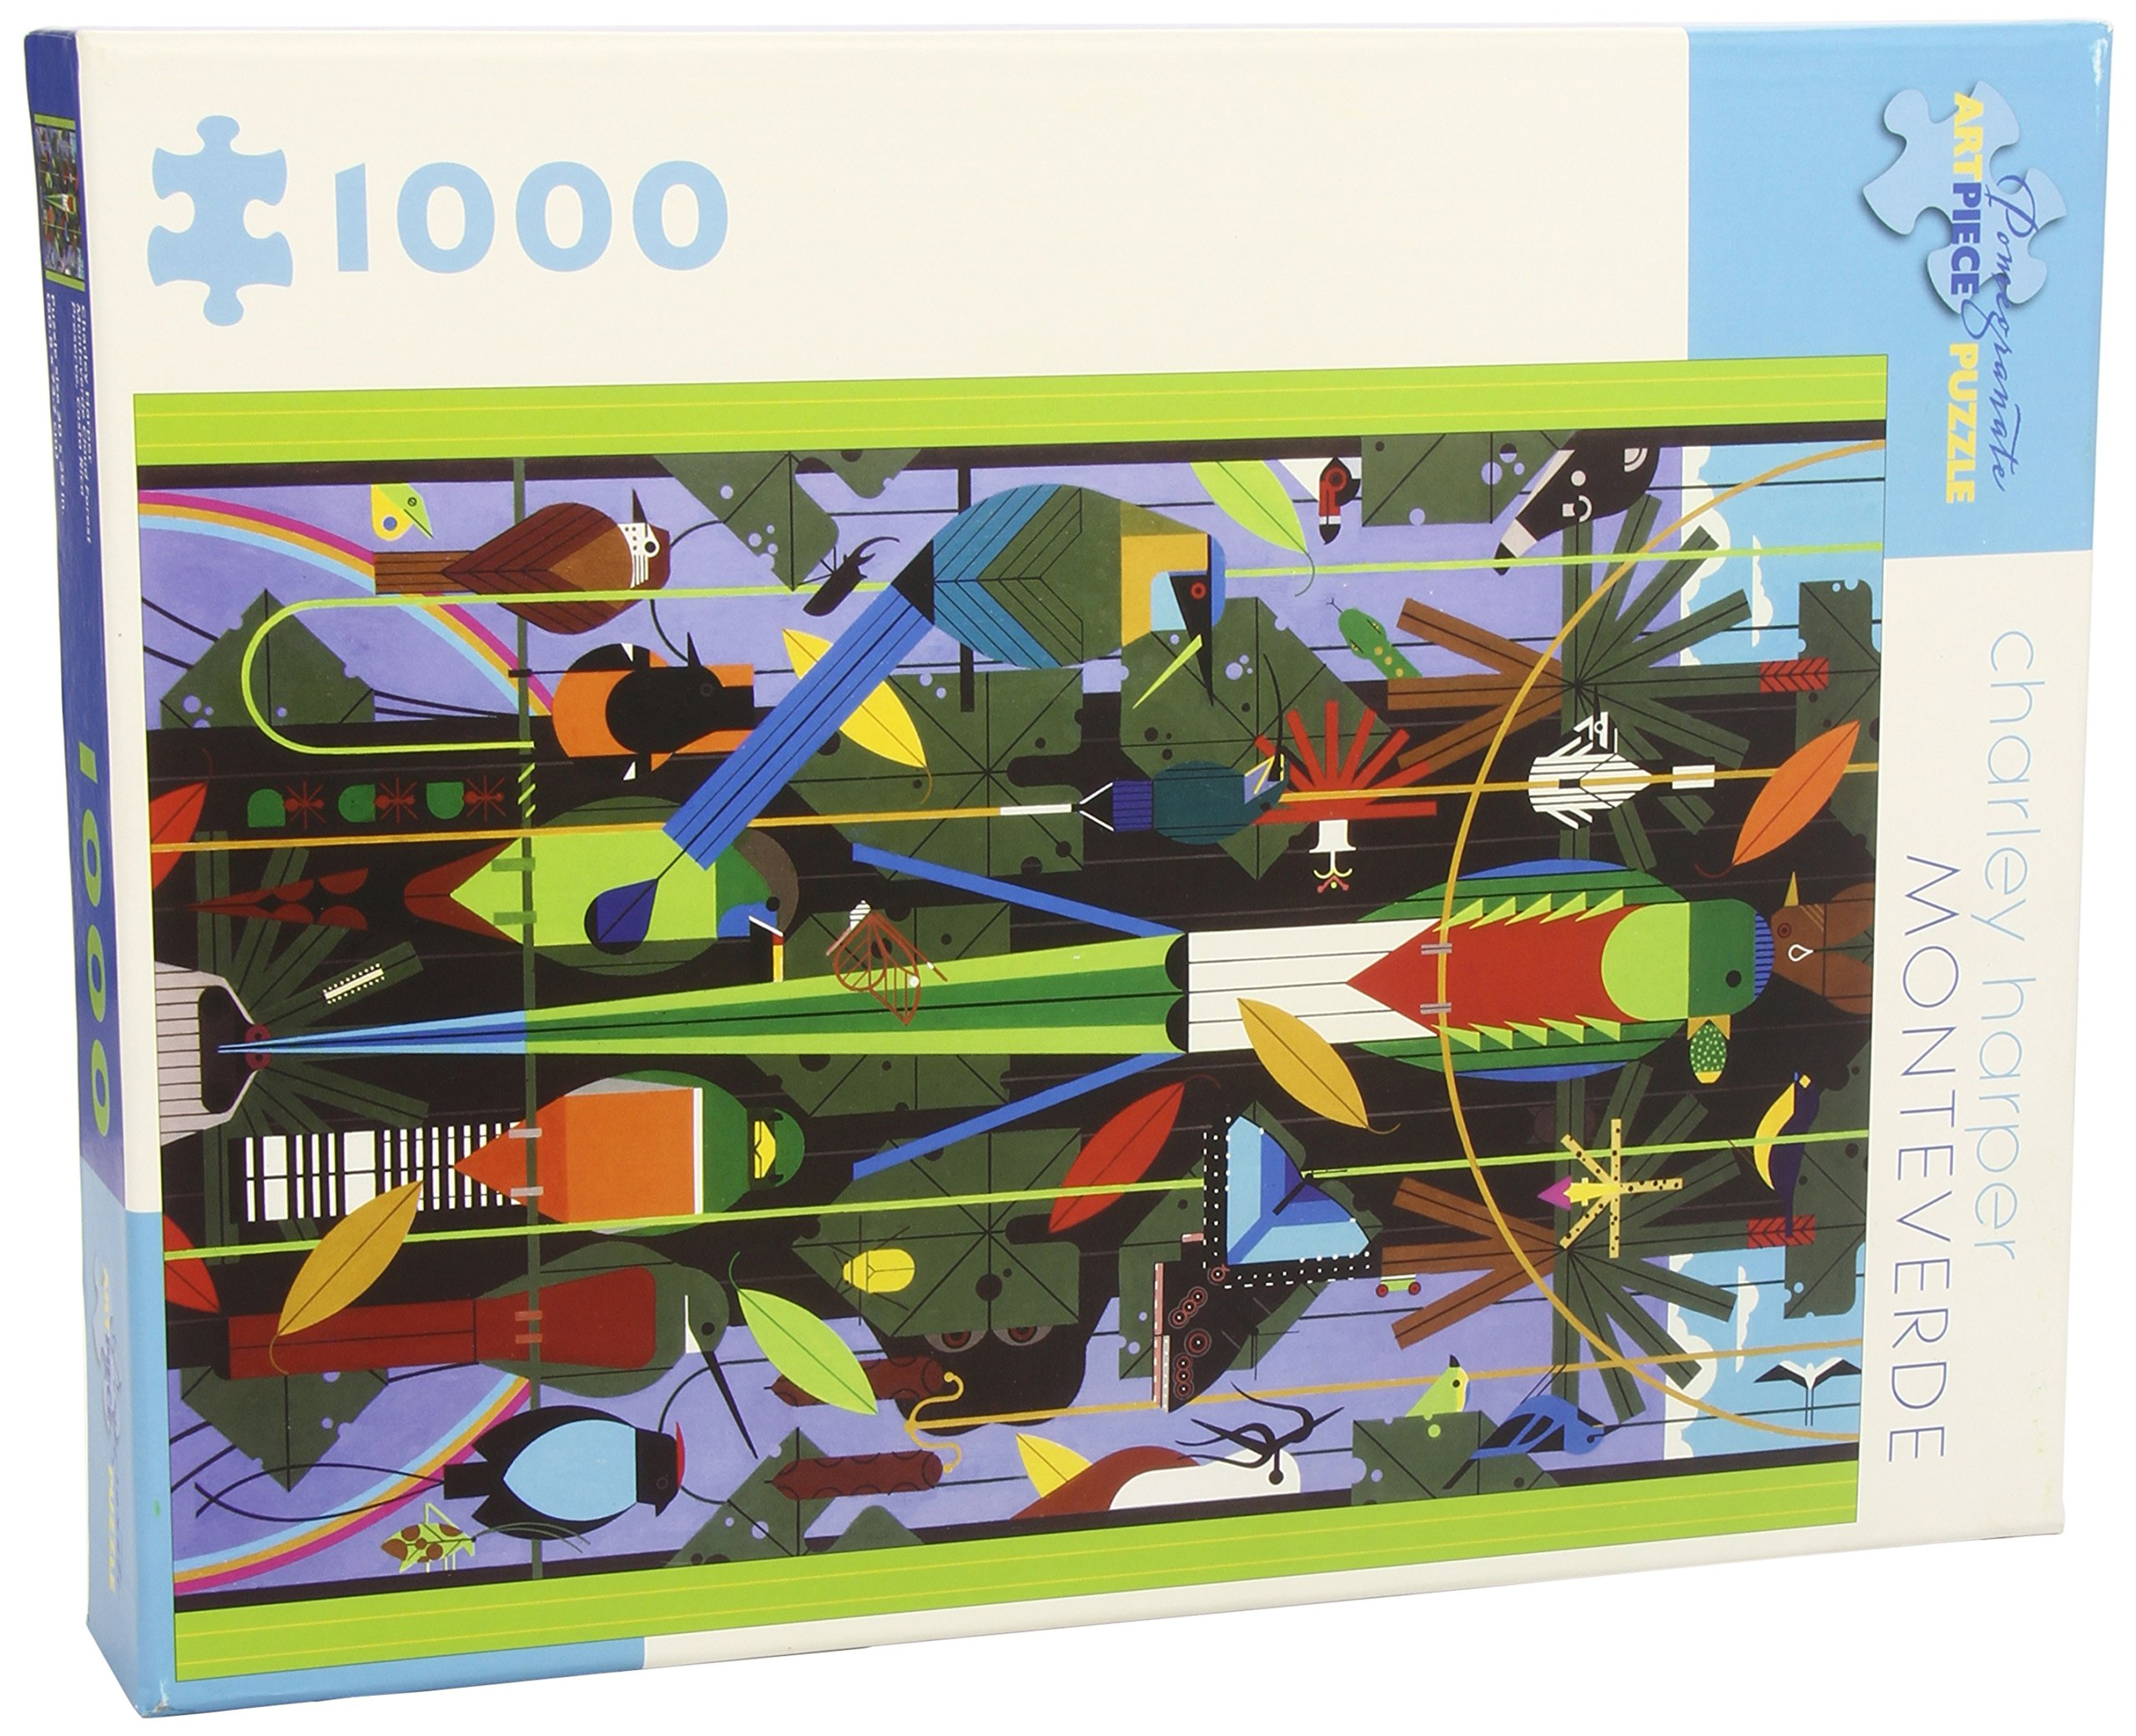 Monteverde 1000-Piece Jigsaw Puzzle Aa665: Amazon.co.uk: Charley Harper:  Books